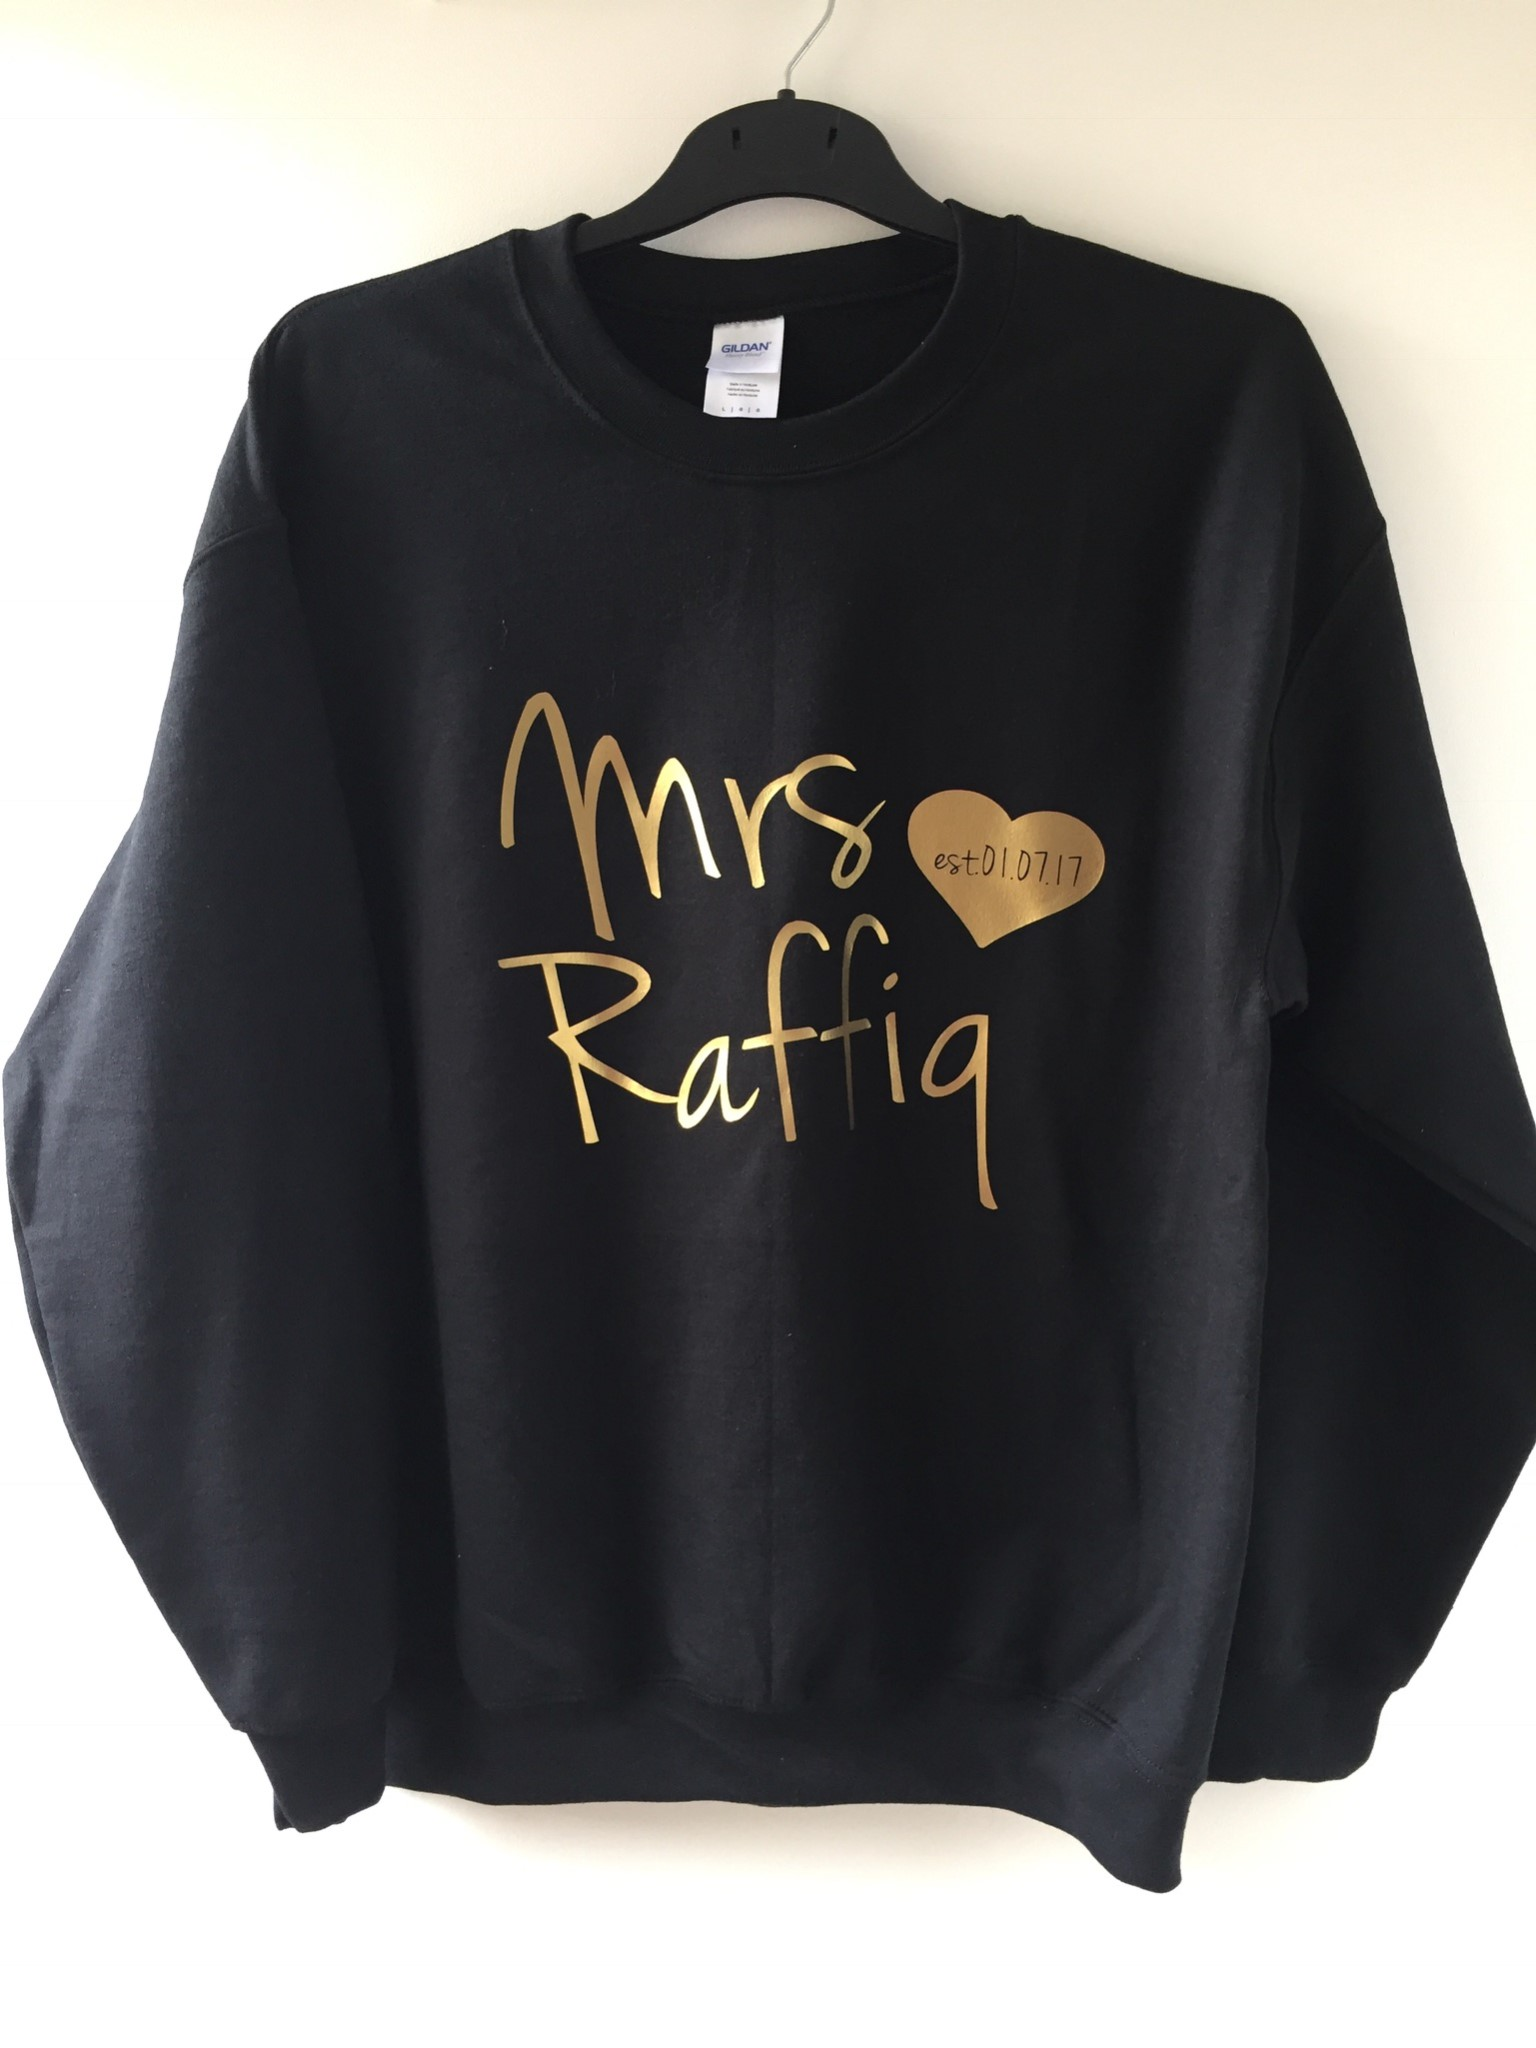 0f9891eaa Future Mrs Sweater, Personalised bride Sweater, Mrs Name to be Sweater